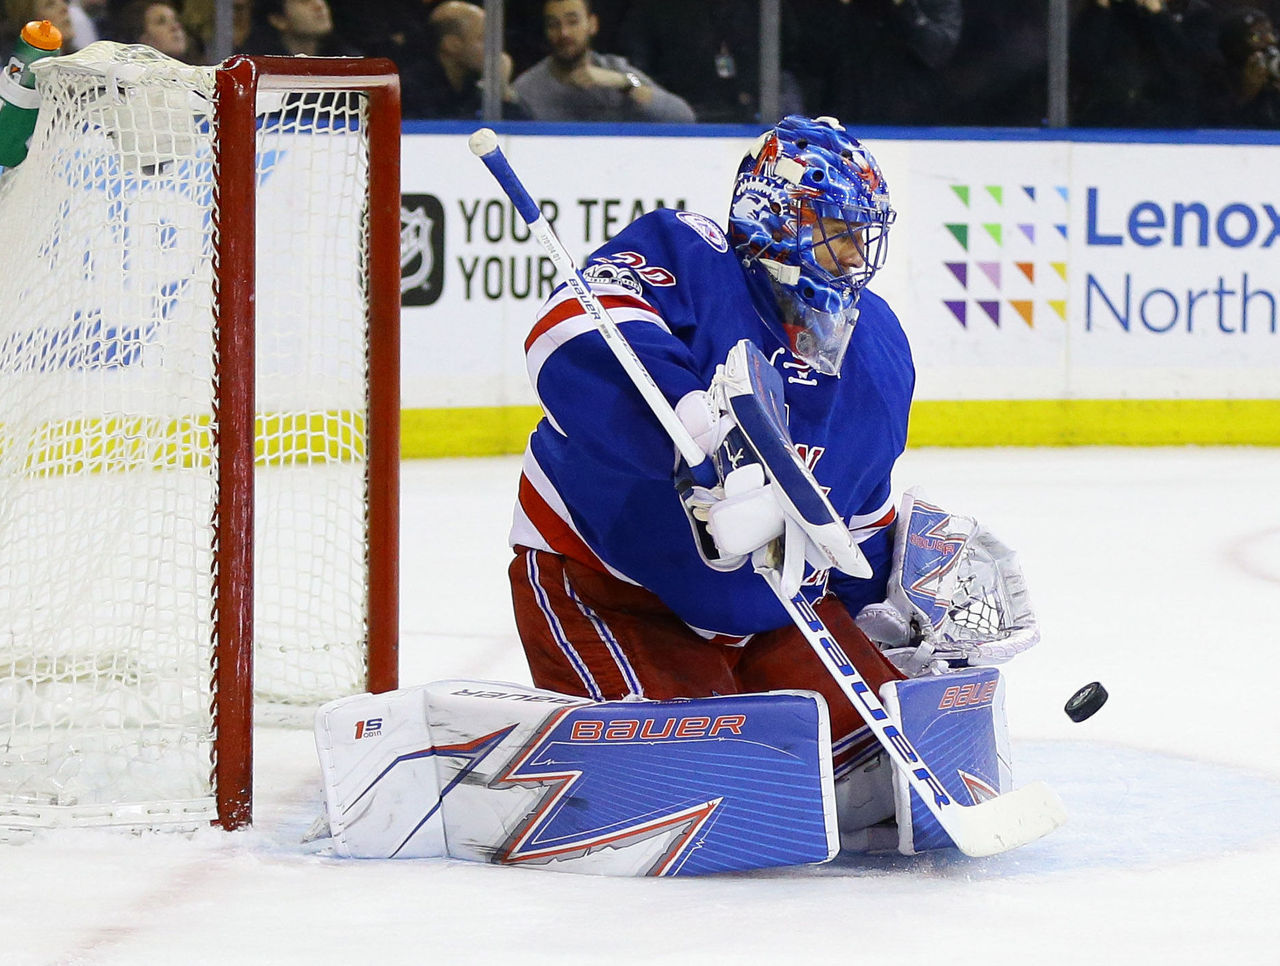 Cropped 2017 01 24t011229z 156570585 nocid rtrmadp 3 nhl los angeles kings at new york rangers